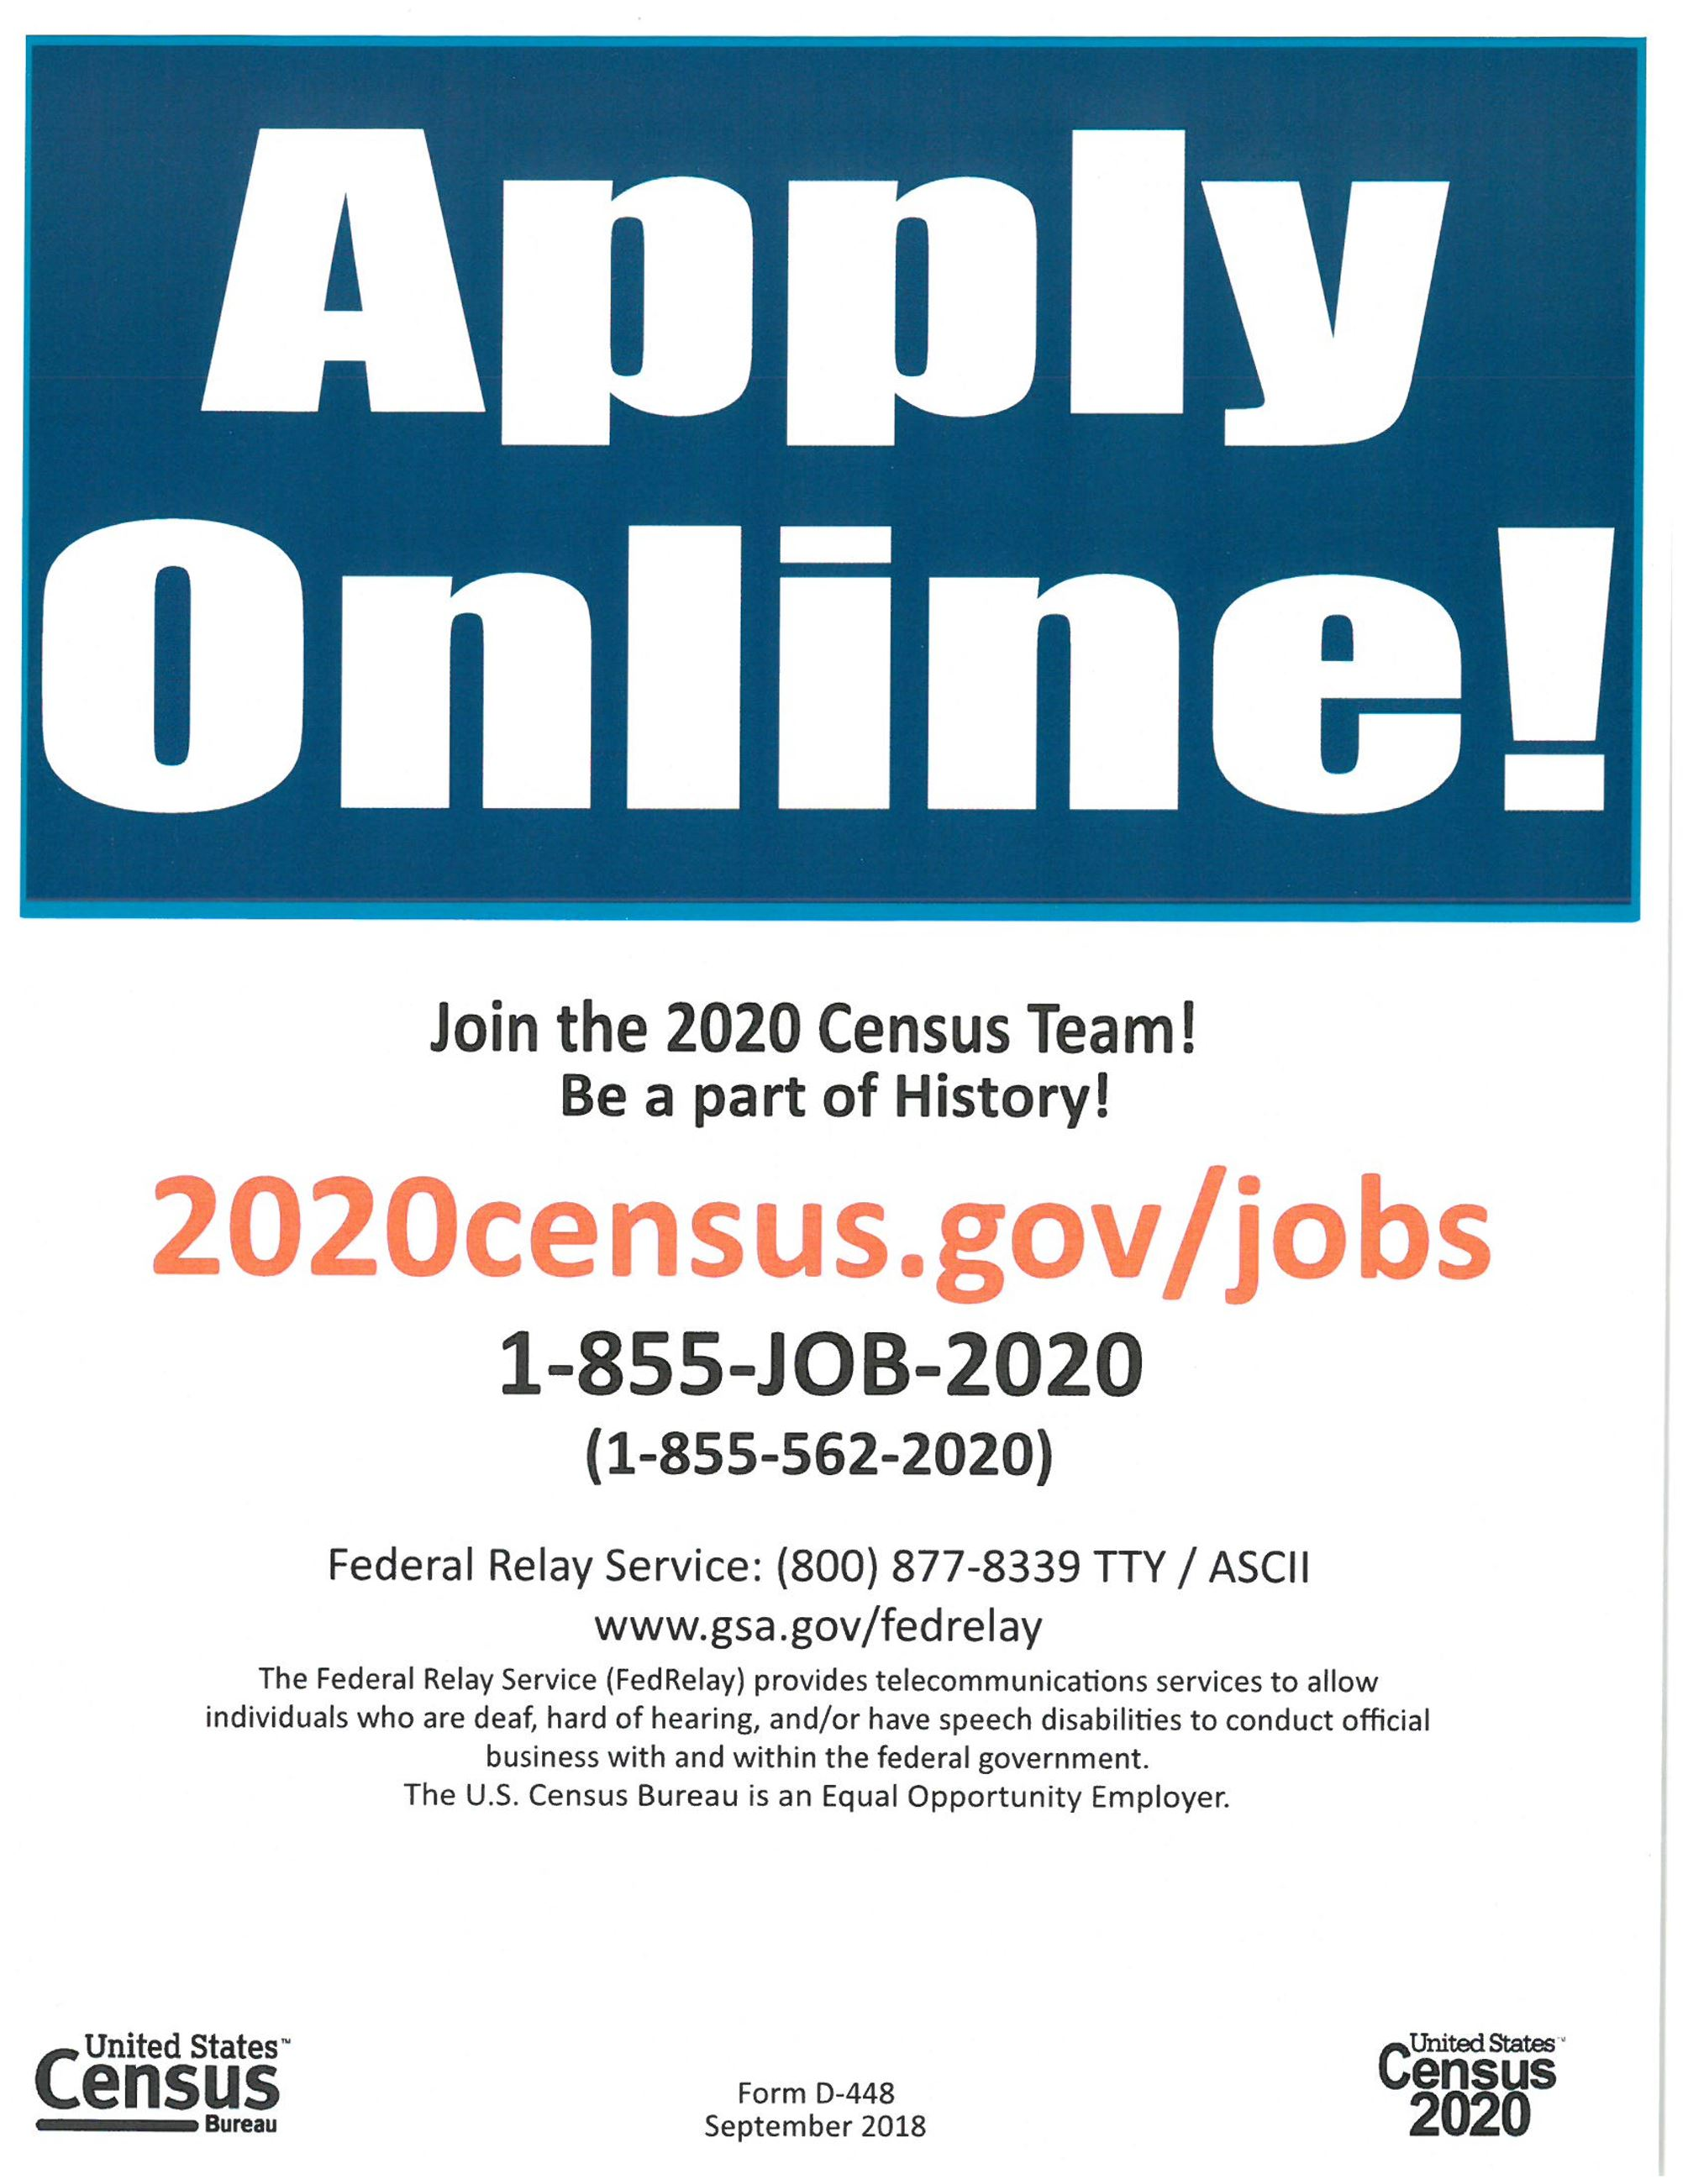 Census 2020 Jobs